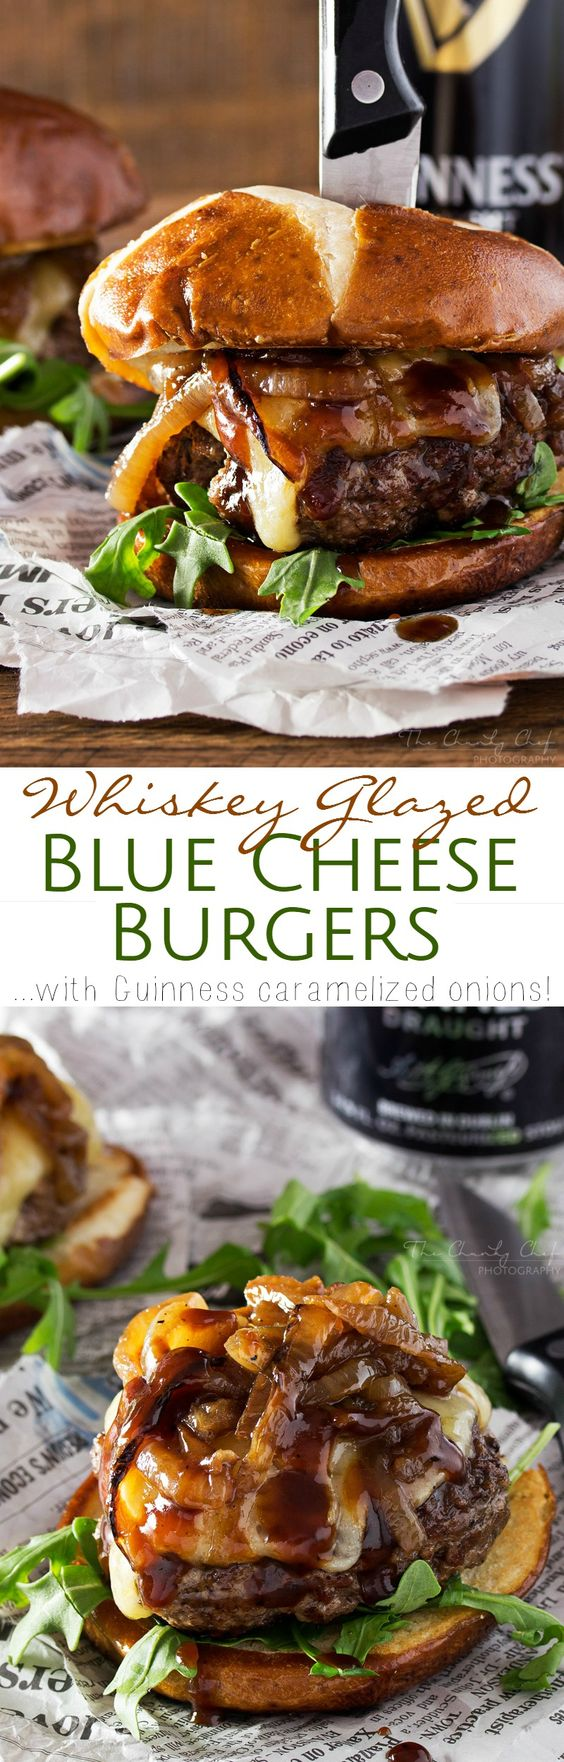 "Whiskey Glazed Blue Cheese Burgers with Guinness Caramelized Onions Recipe via The Chunky Chef  ""These blue cheese burgers are brushed with a homemade whiskey glazed, topped with Irish cheese, and smothered in Guinness caramelized onions!"""